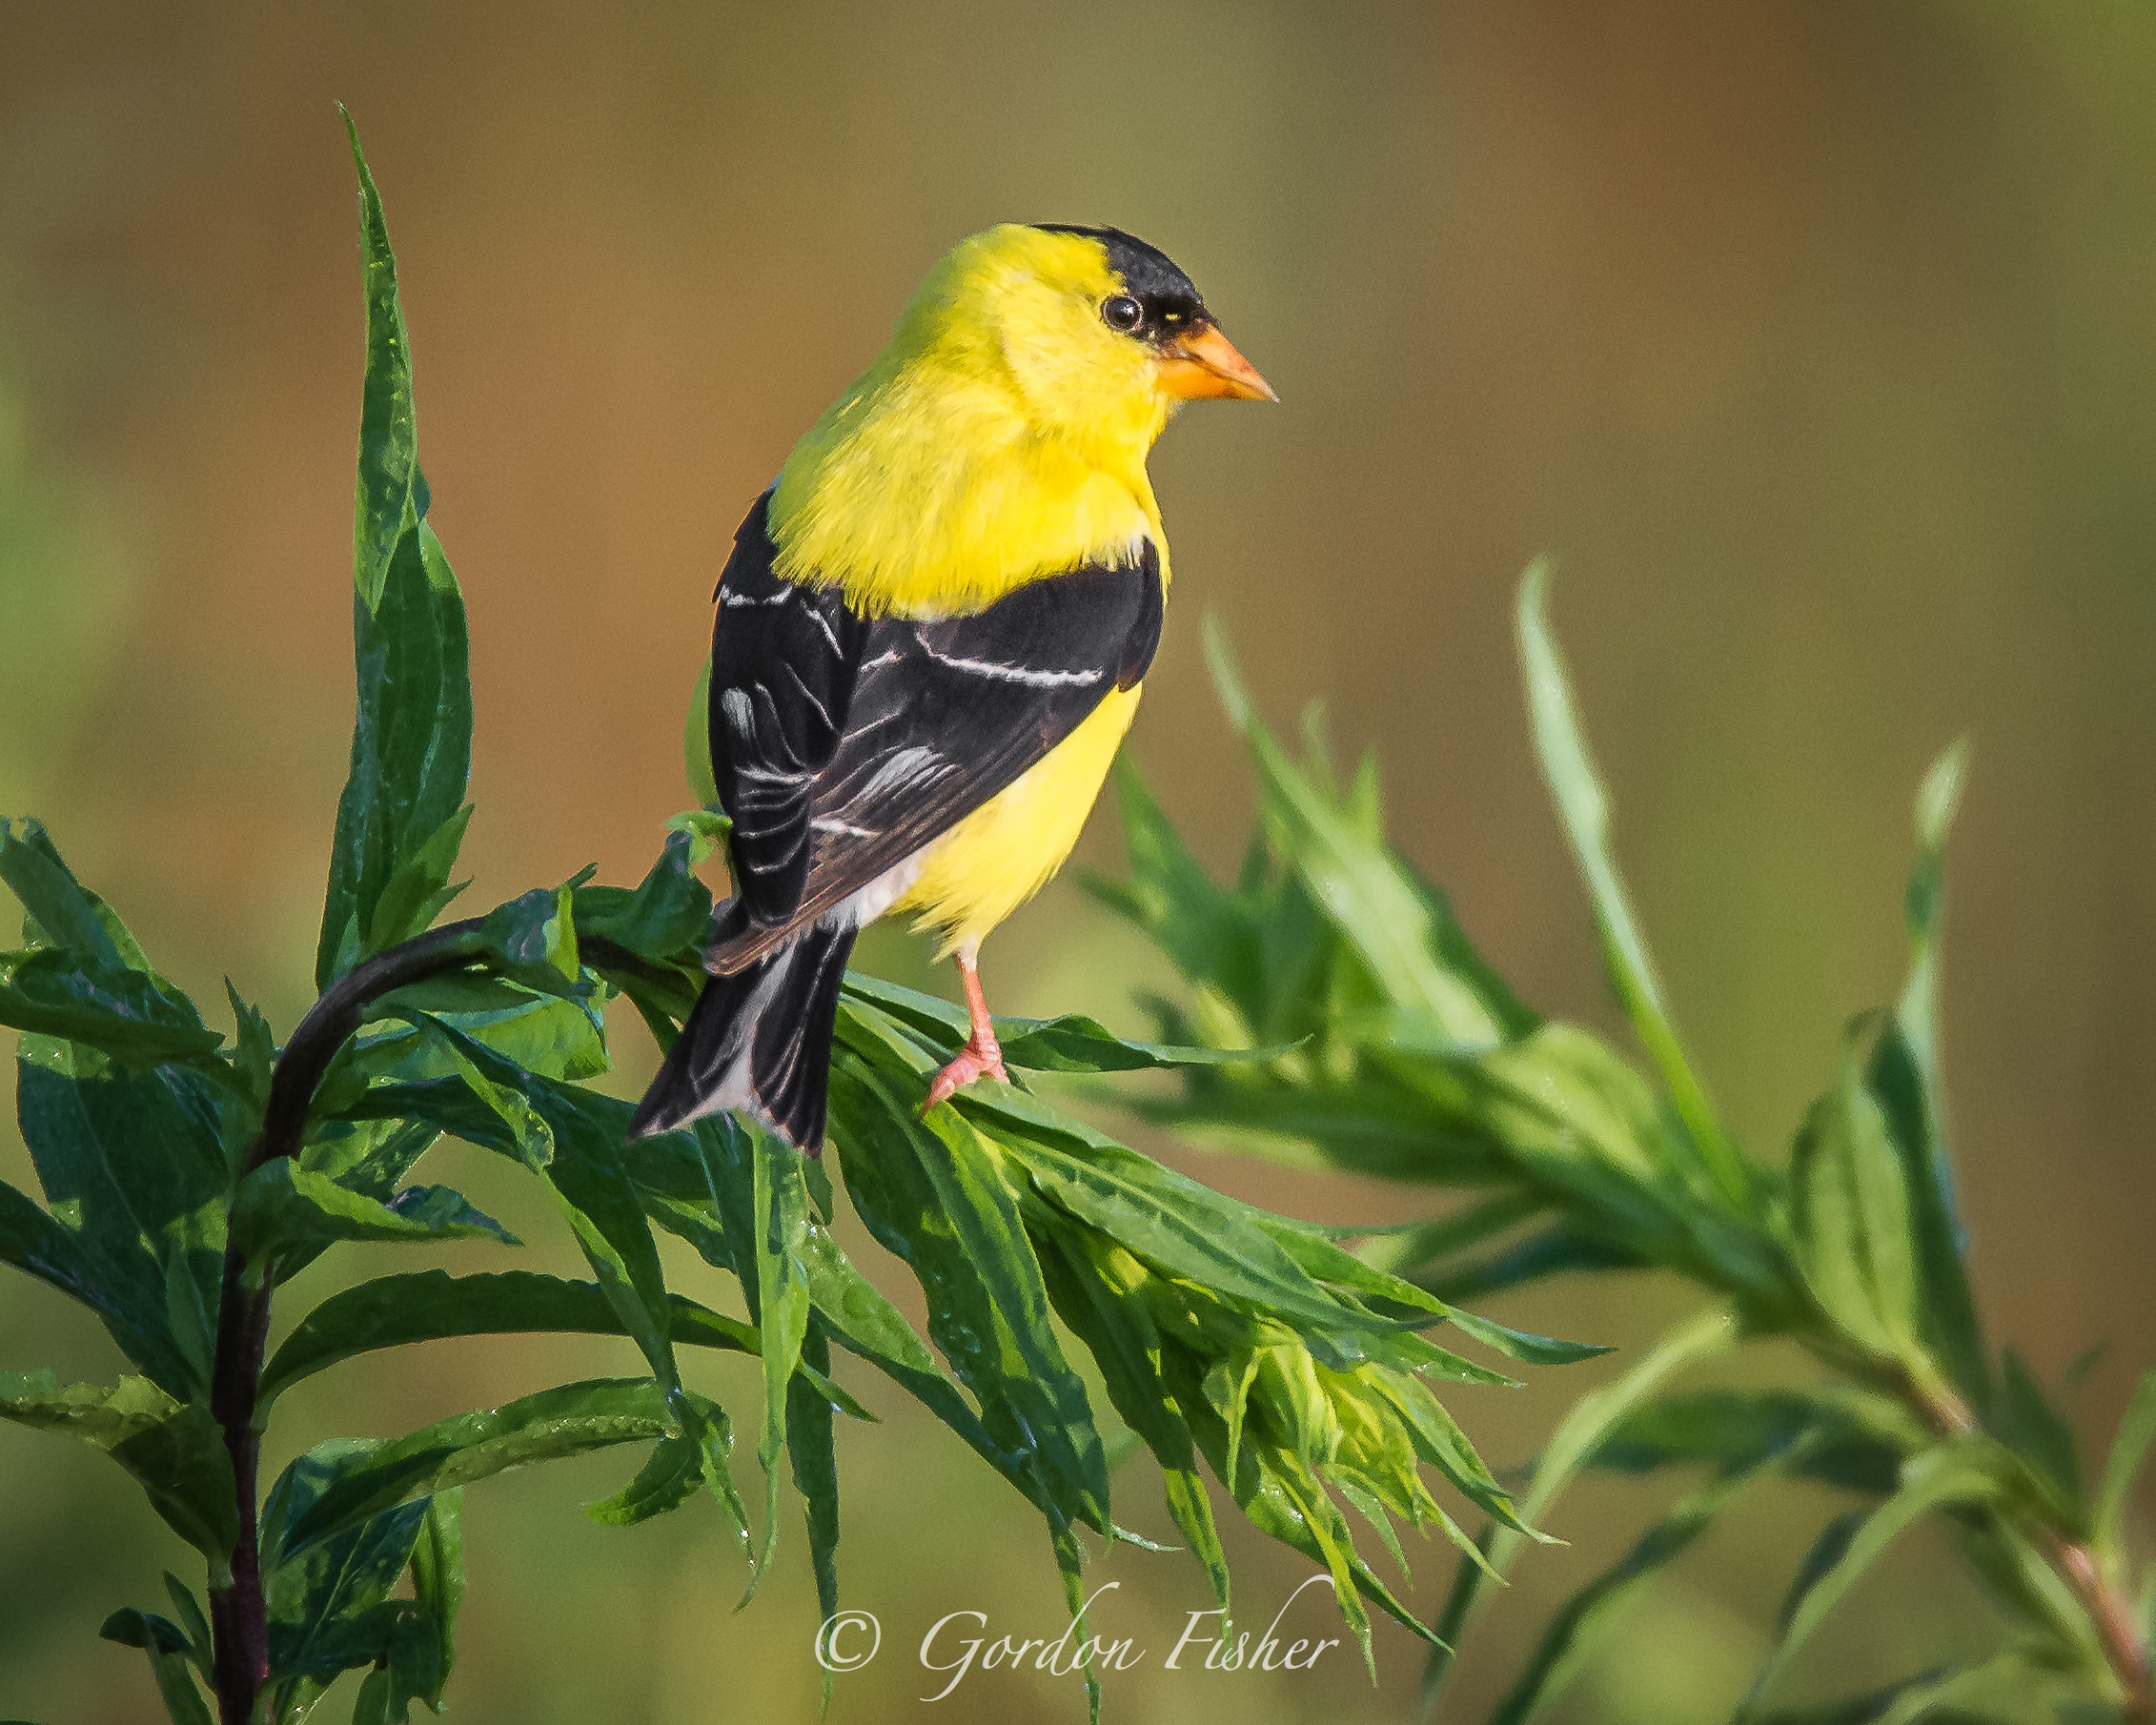 Goldfinch at Sunrise